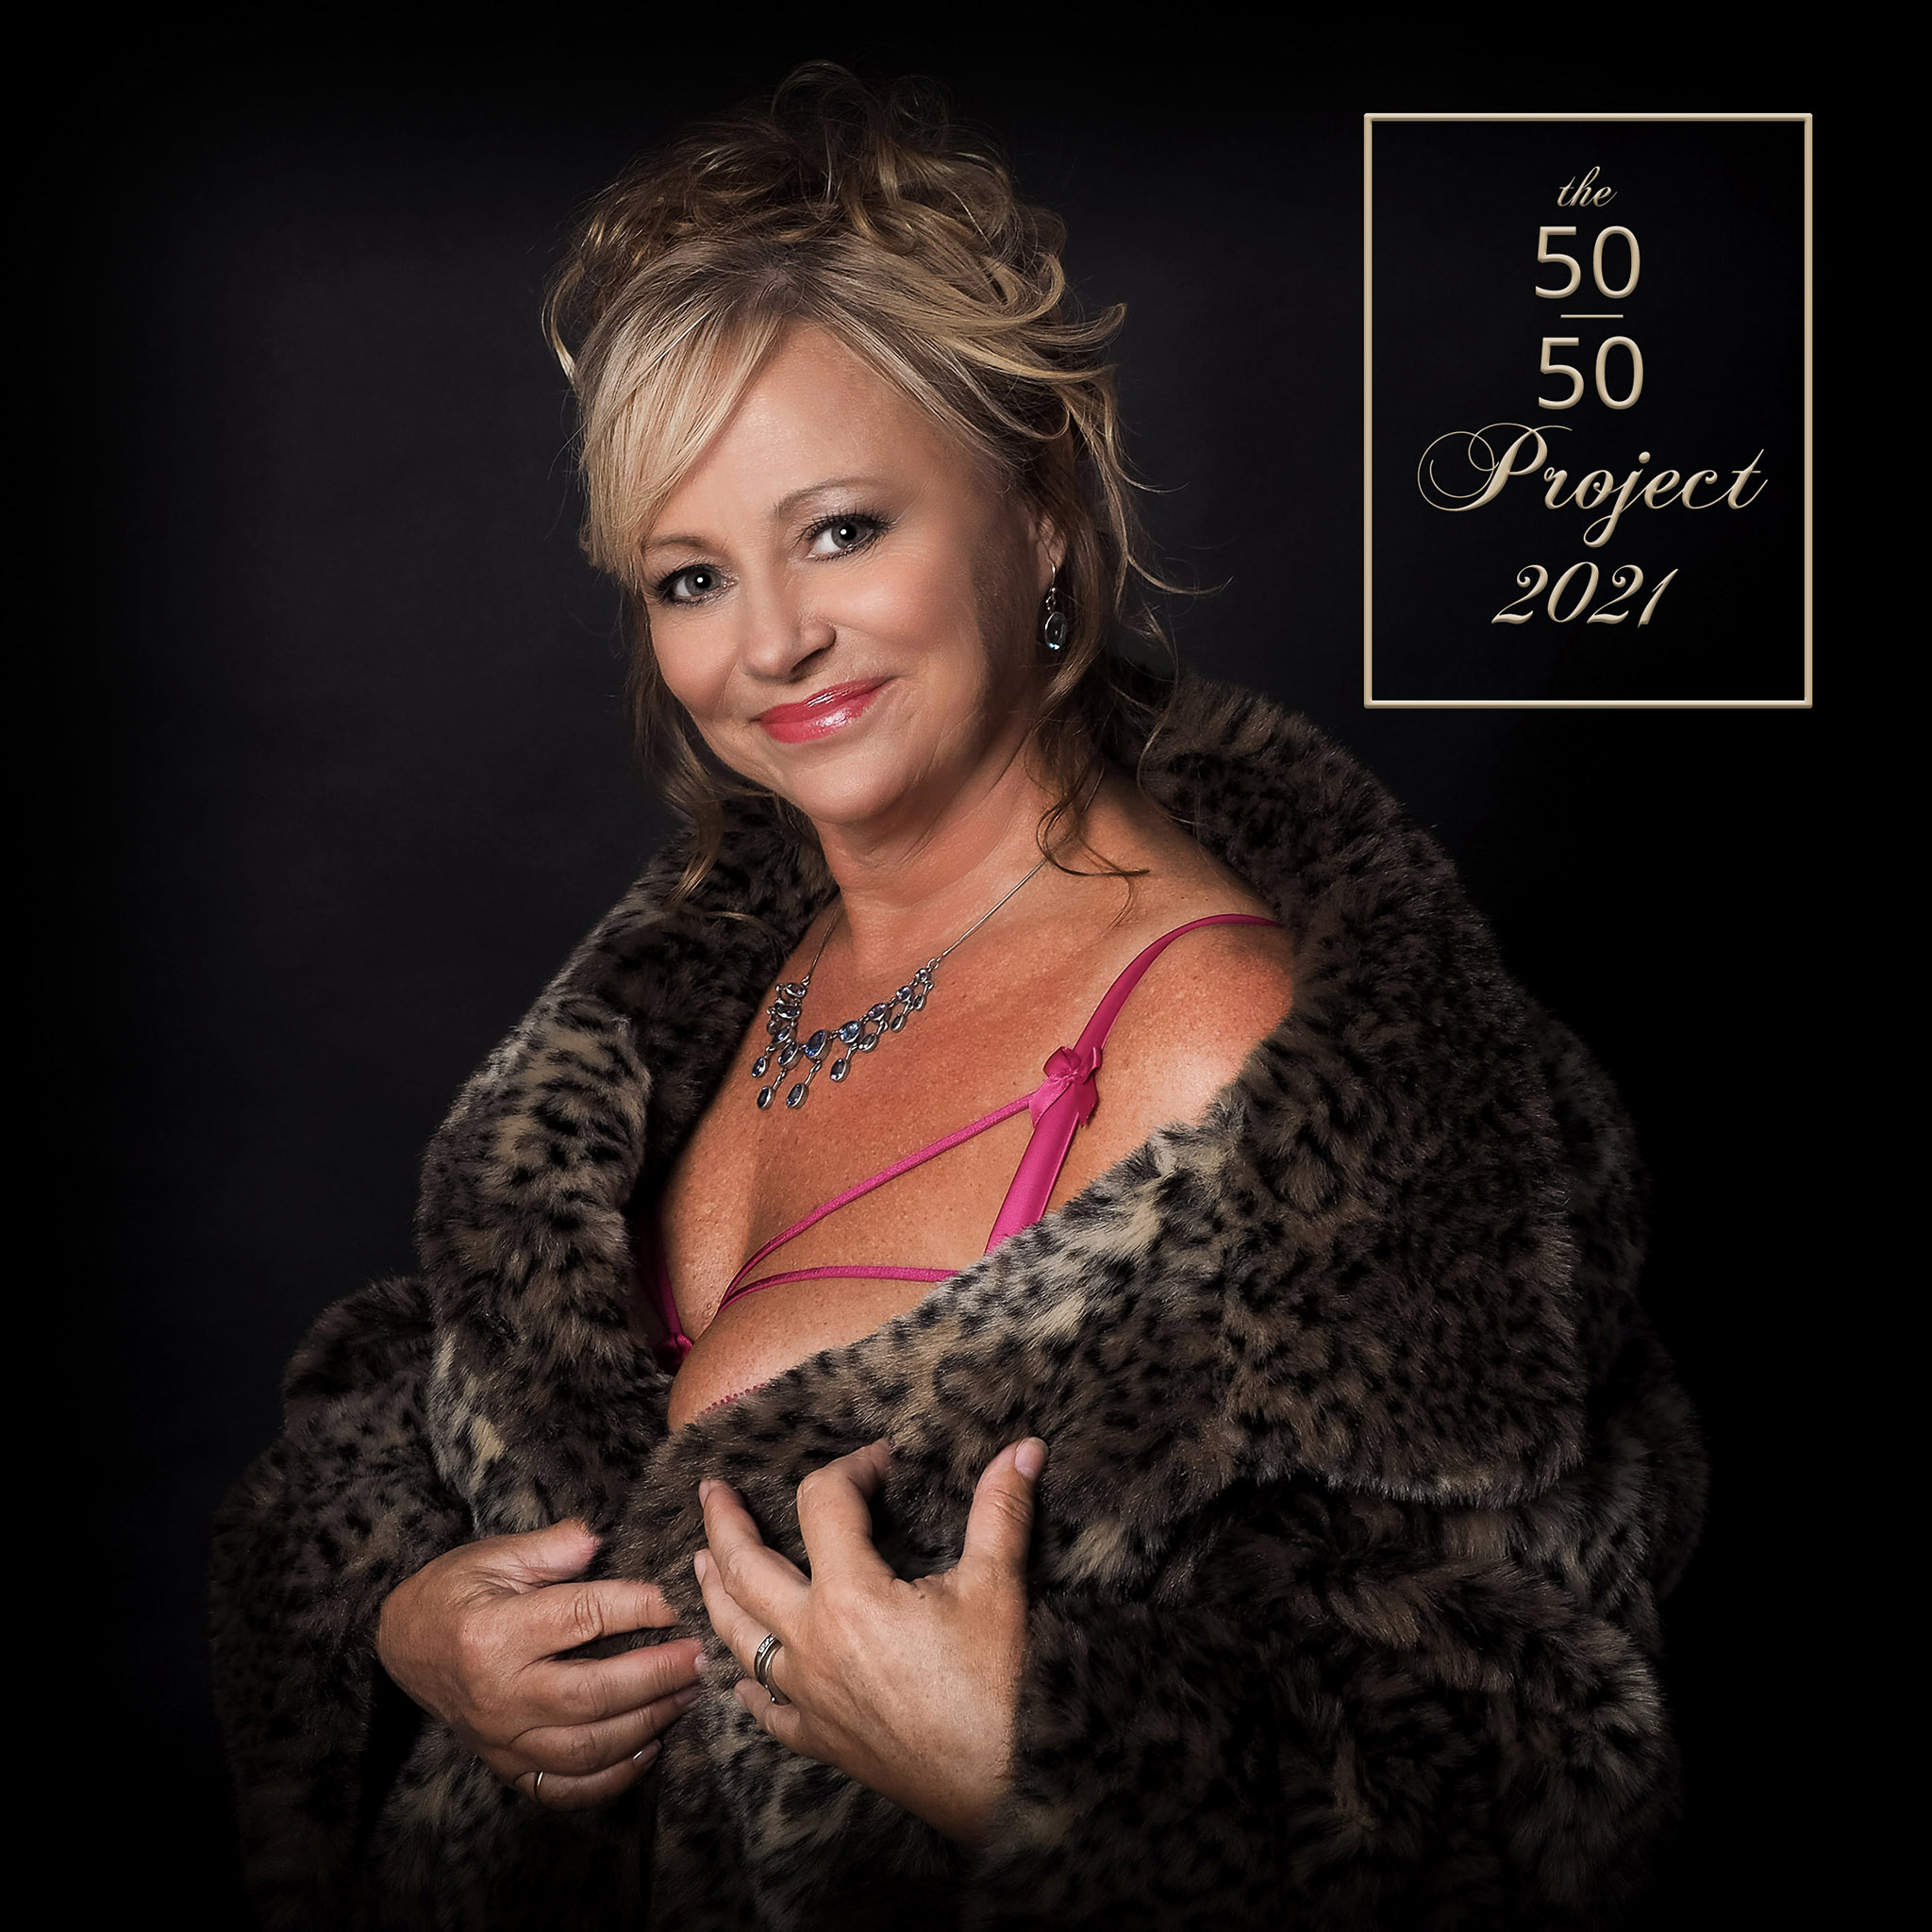 50 over 50 Project